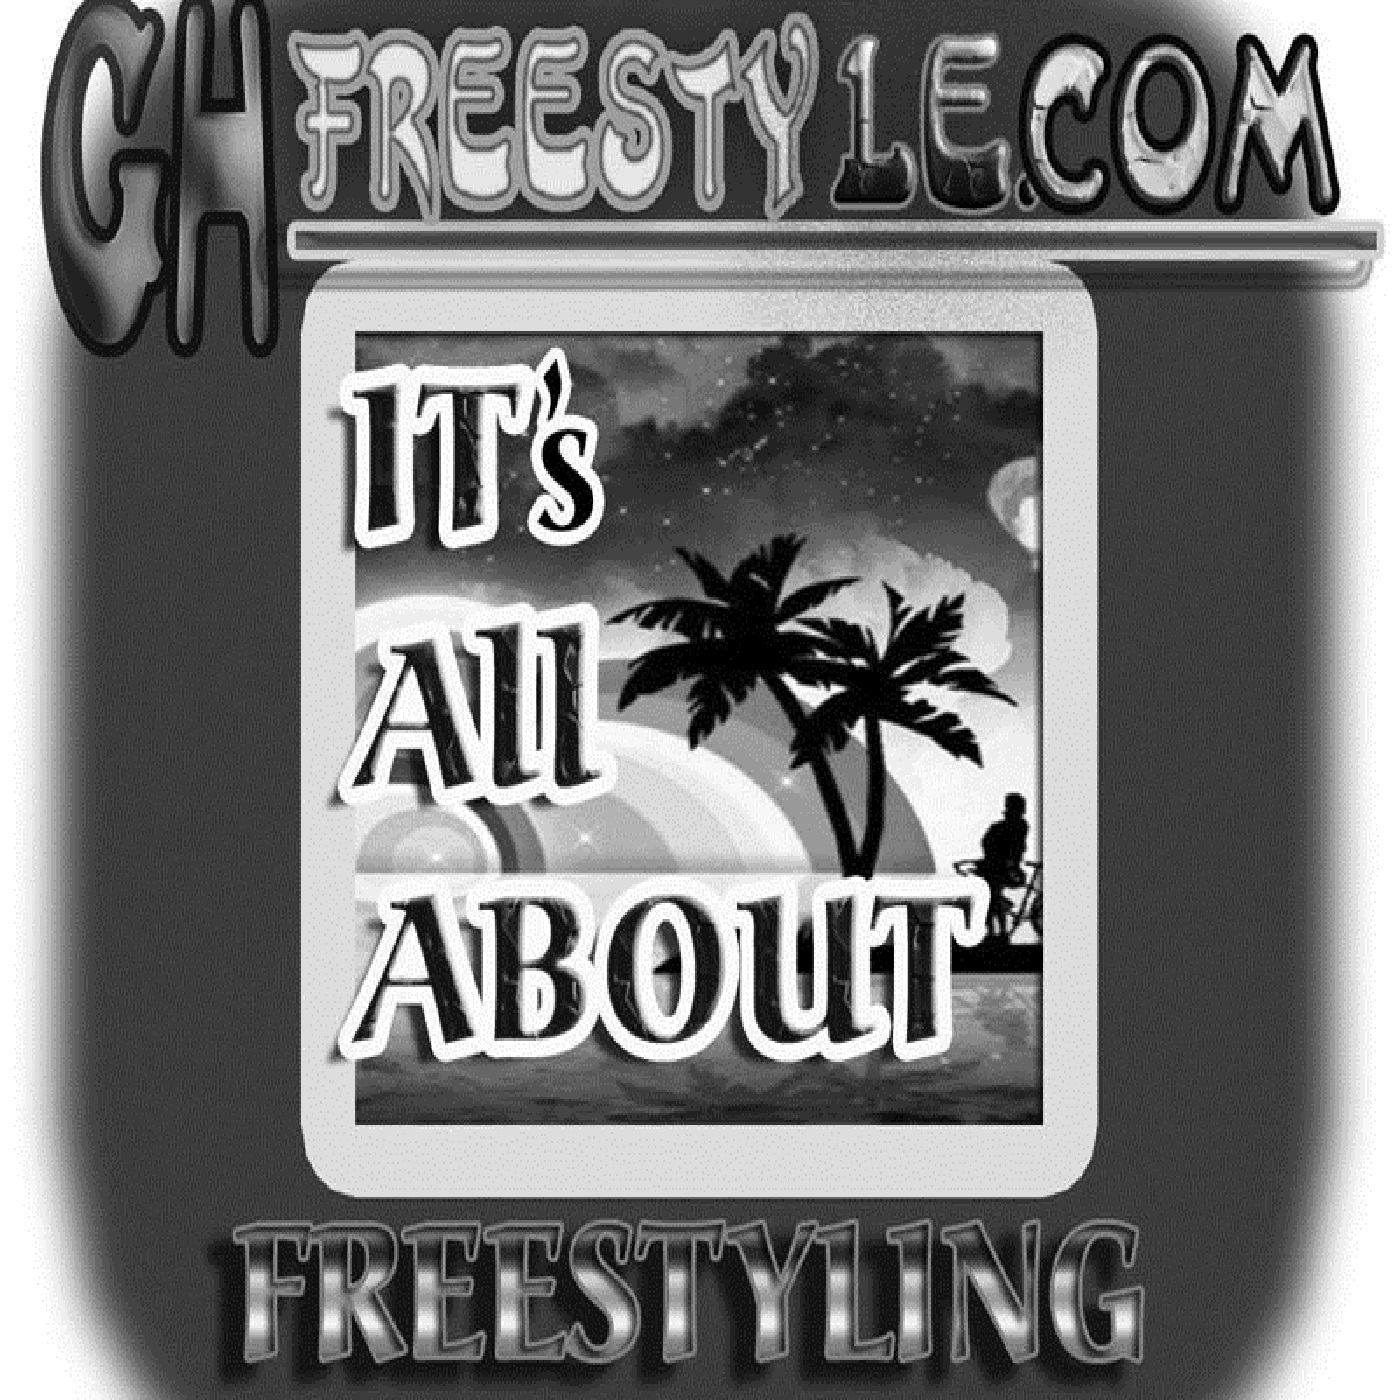 Gh Freestyles' Podcast